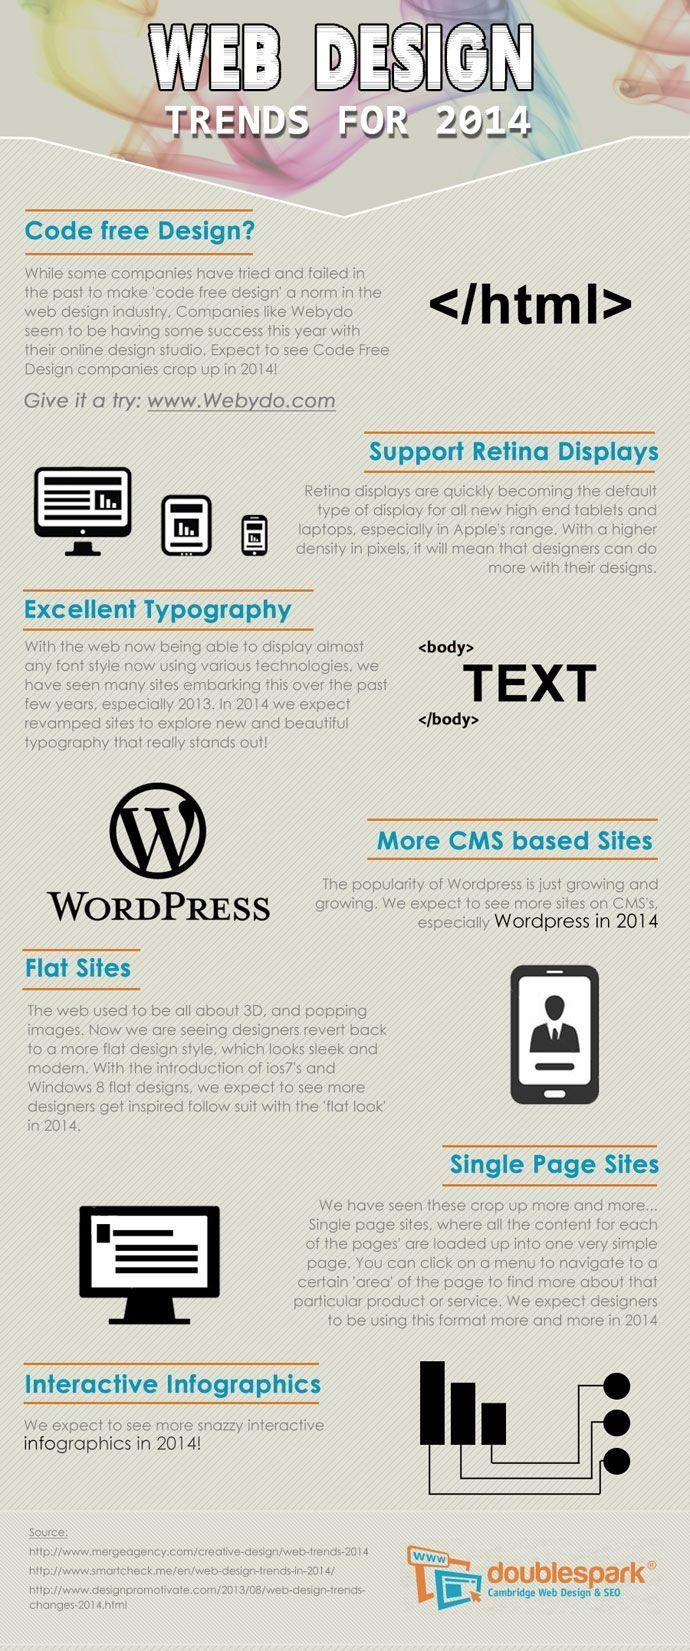 106 best social media nfographic images on pinterest digital marketing social media marketing and content marketing